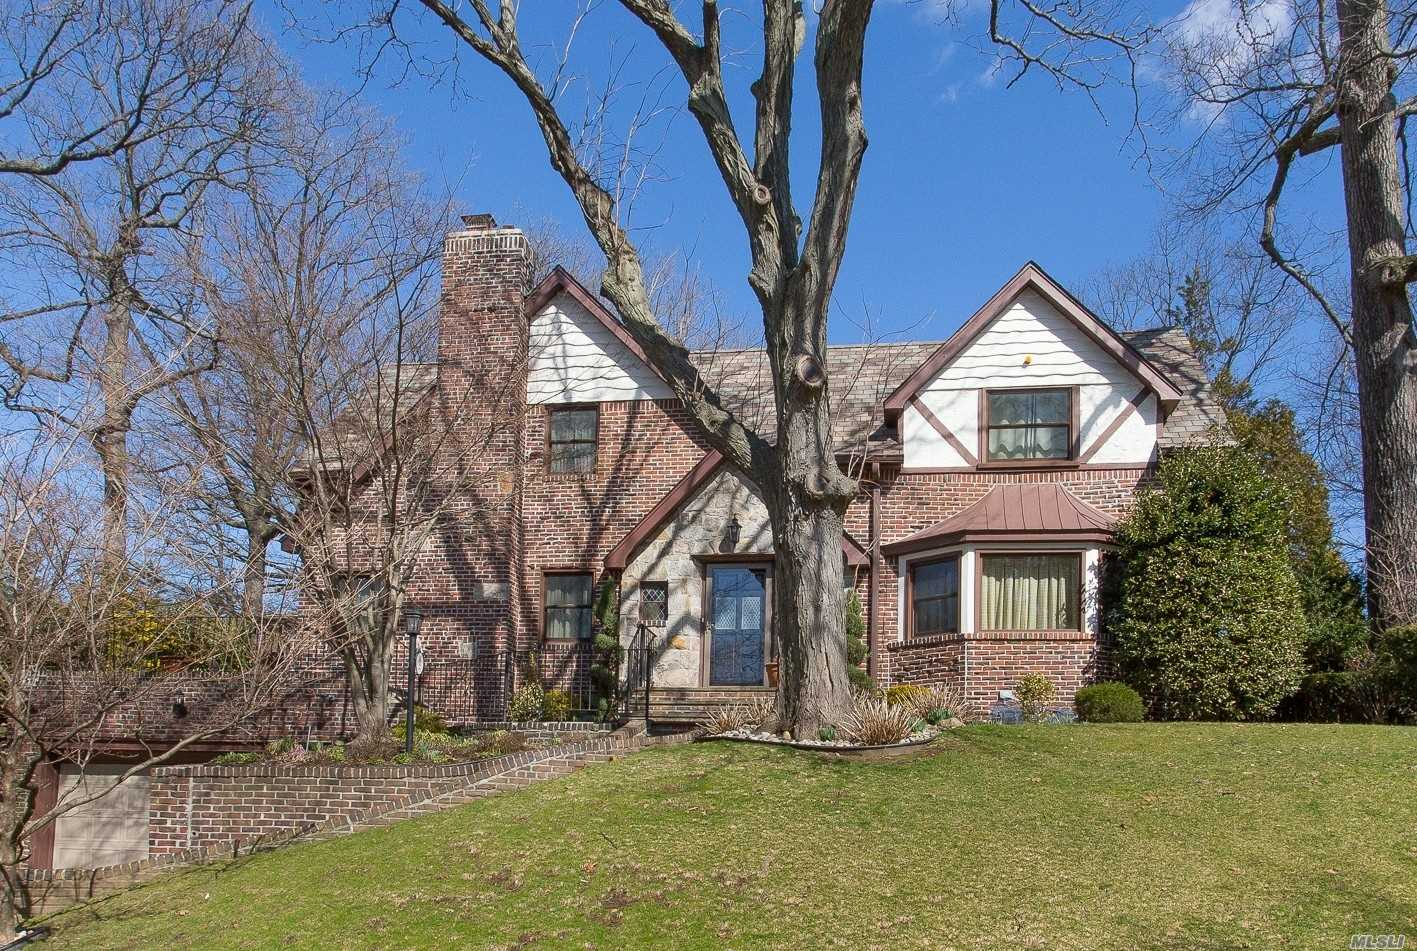 This Sprawling And Unique Tudor Center Hall Colonial Is Unlike Any Other Home In Jamaica Estates! Set On Almost One-Third Of An Acre, This Stately And Inviting Home Boasts An Amazing Layout And Never Ending Architectural Surprises. Just Off The First Floor Sitting Room, The Granite Tile Patio Offers A Graceful Location For Entertaining Guests. Personal Touches Give This Home The Perfect Balance Of Elegance And Warmth, Ideal For Any Family To Move Right In.